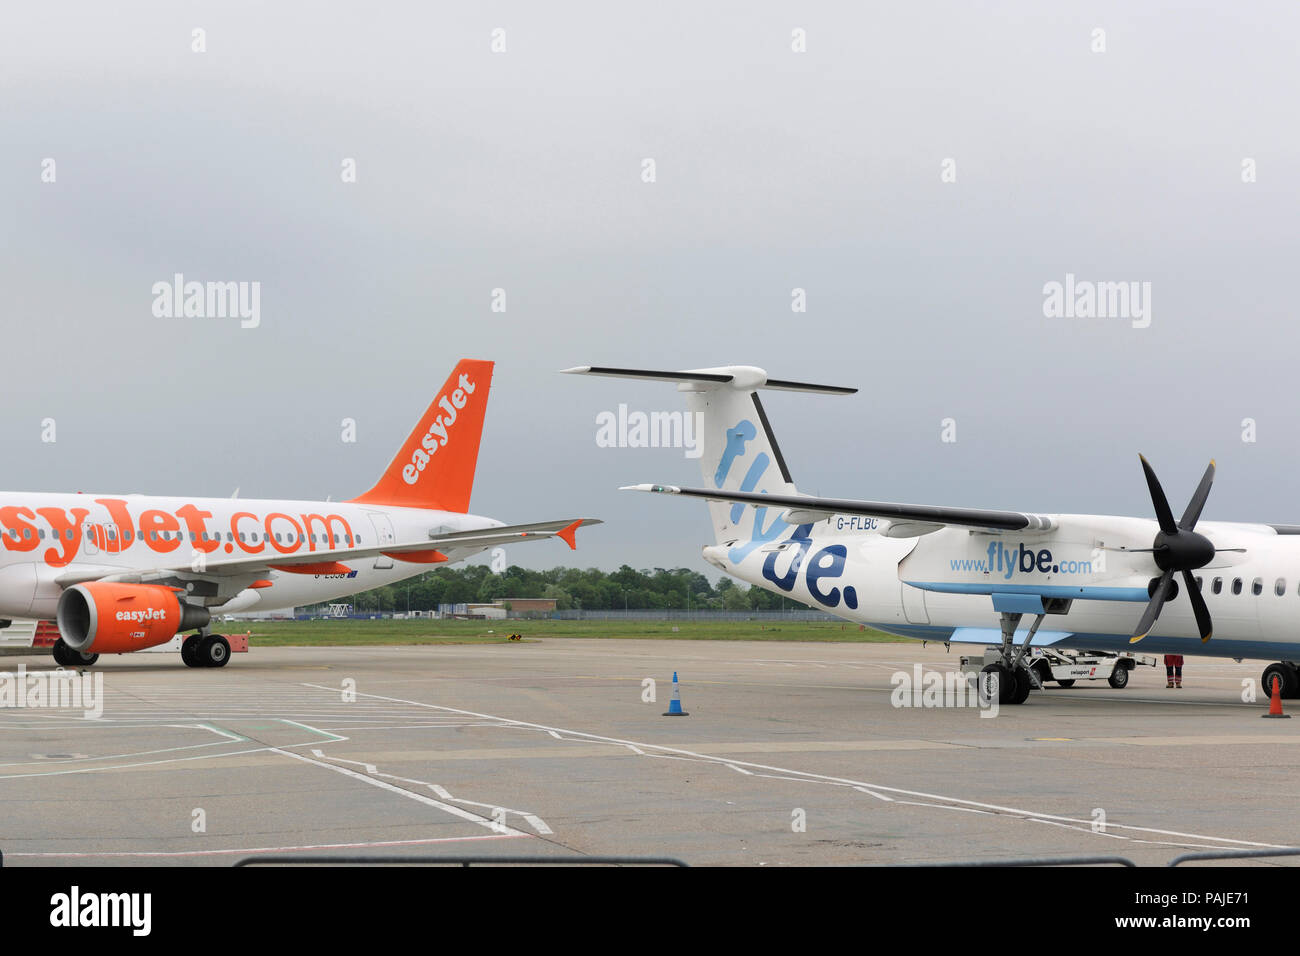 Flybe Bombardier DHC-8 Q400 parked with easyJet Airbus A319 taxiing behind - Stock Image